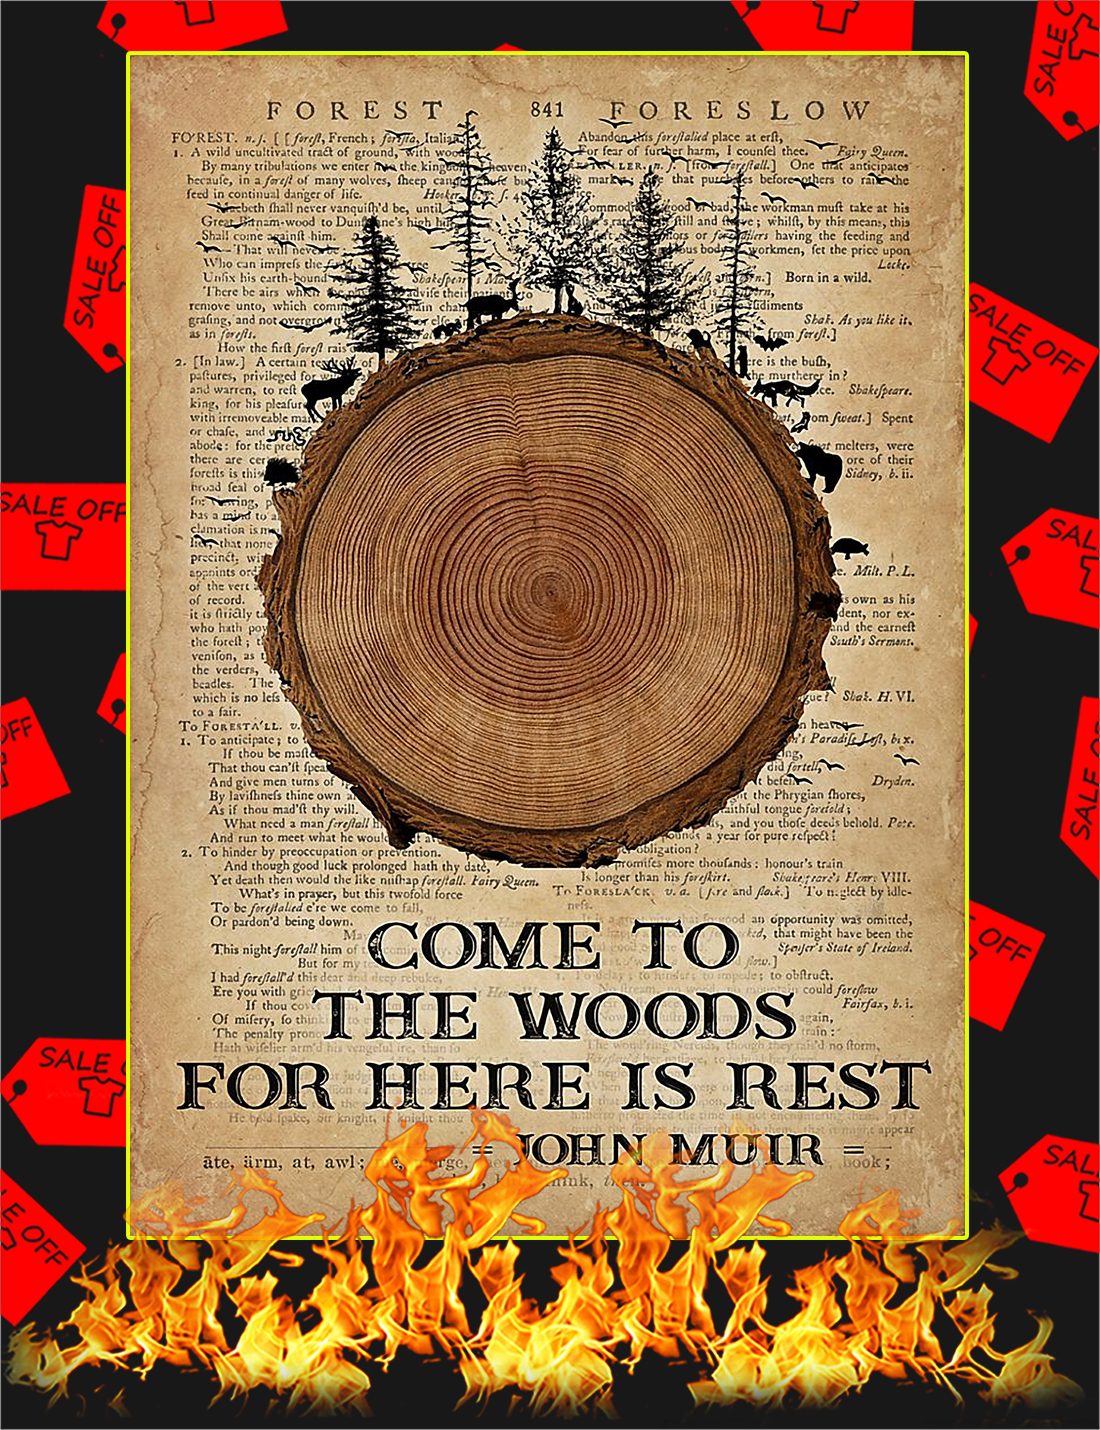 Come to the woods for here is rest poster